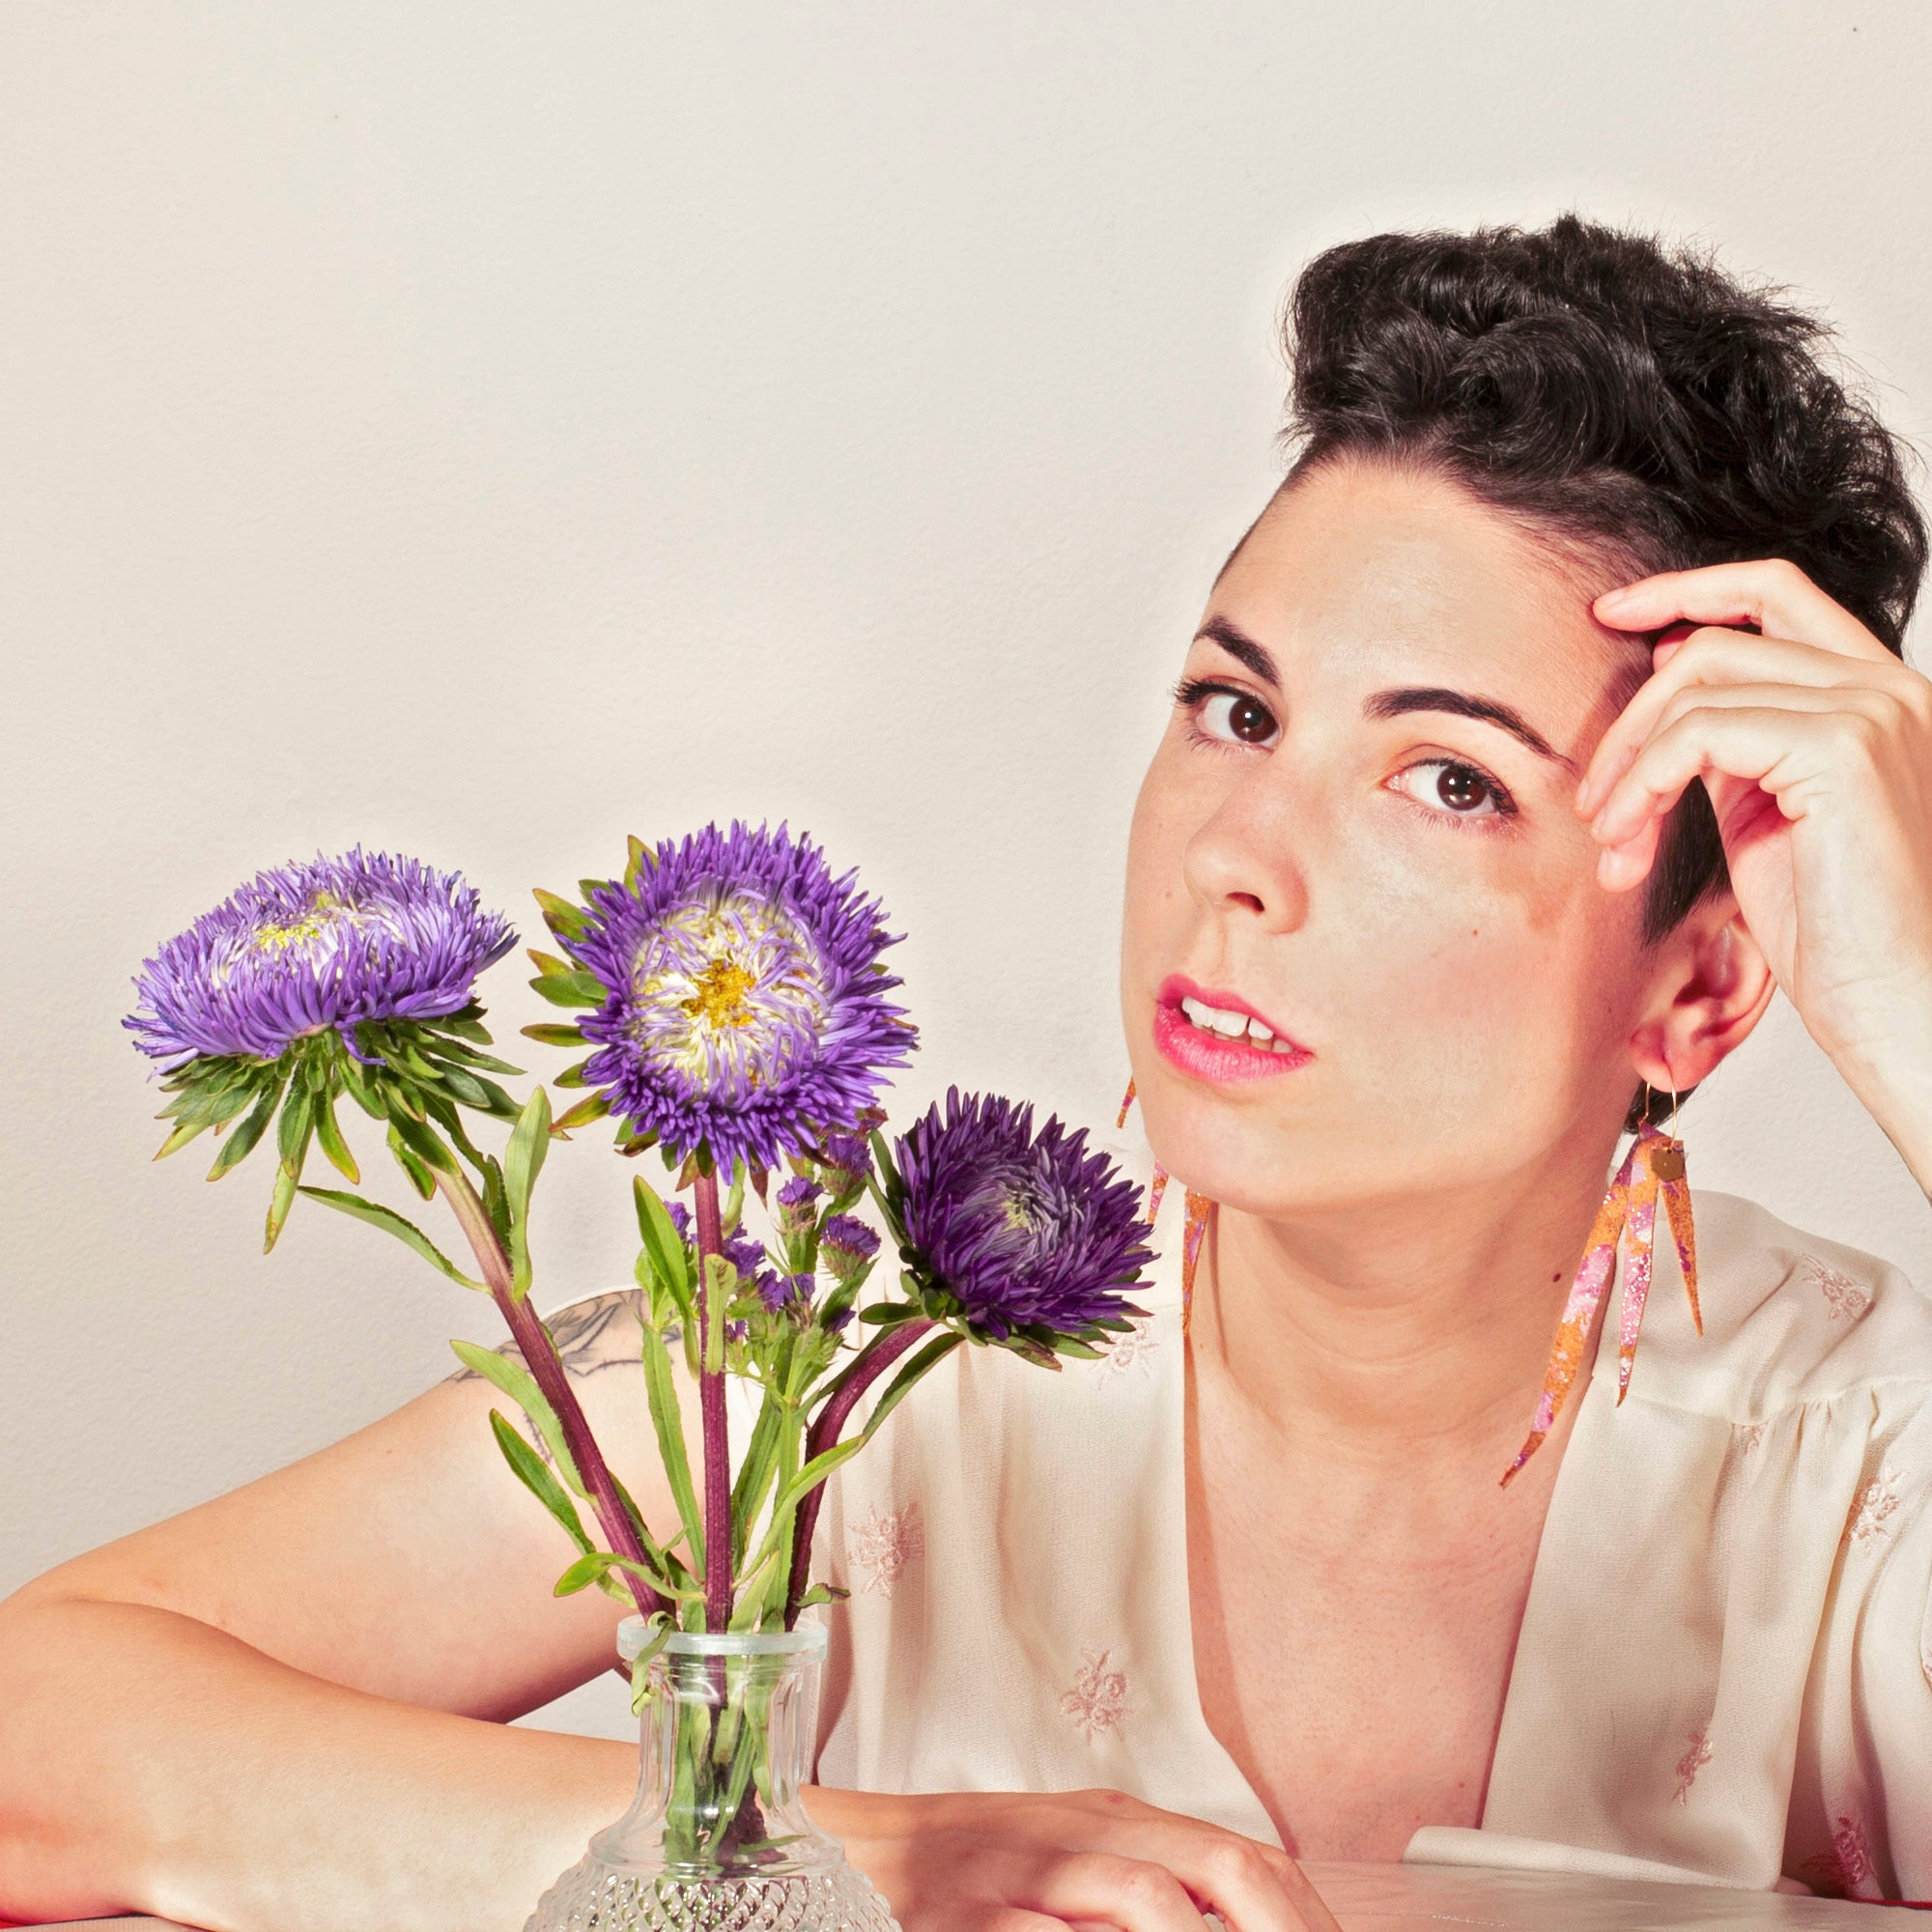 Female model with short brown hair wears a cream silk blouse and sits at a table with a vase of purple flowers in front of her. She is modeling tan suede layered boho style fringe earrings on 20mm gold hoops with small gold colored brass hexagon charm